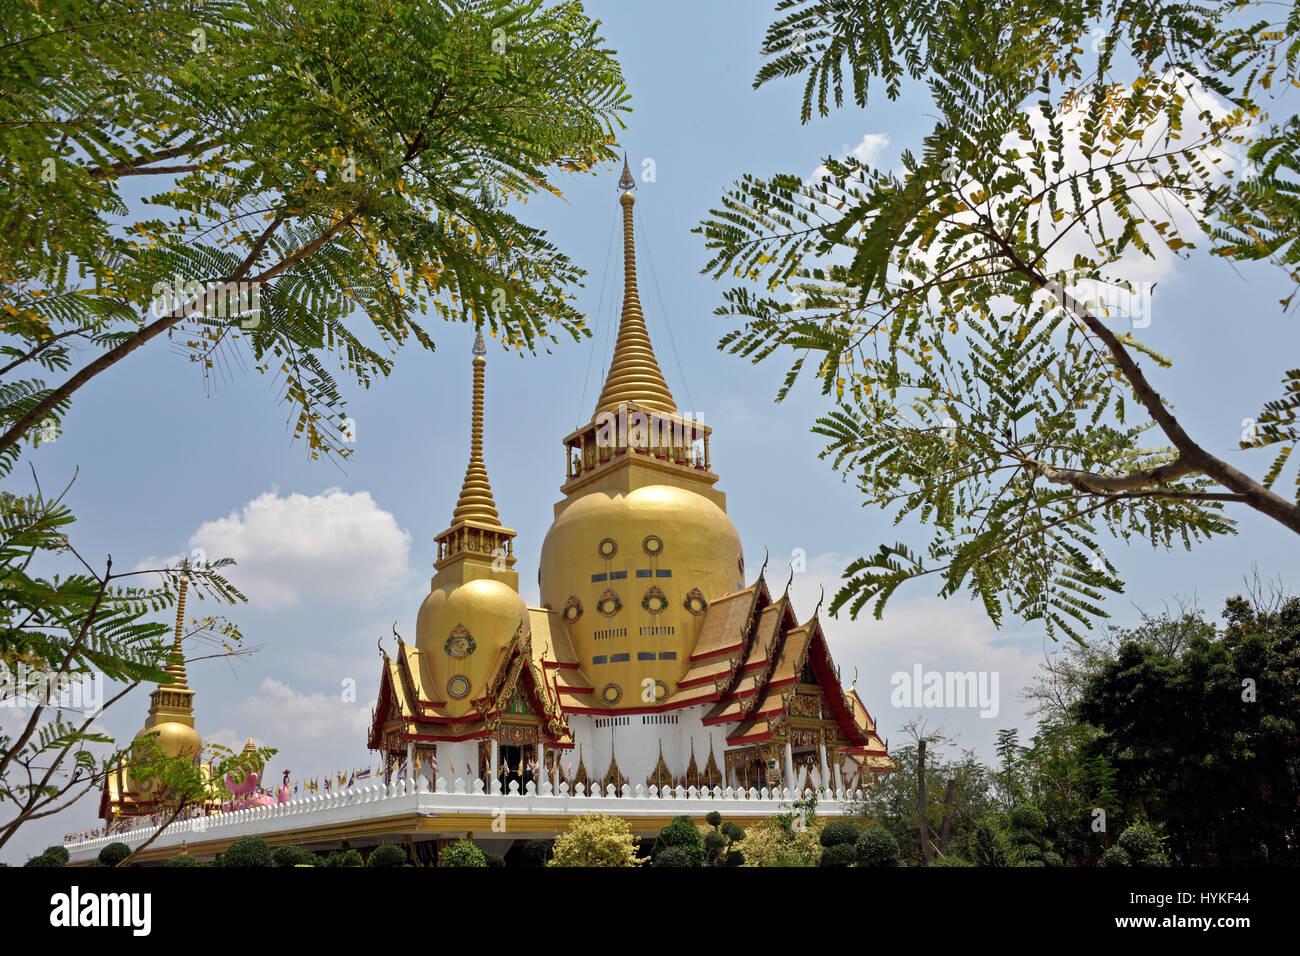 The beautiful golden ubolsot of Wat Phrong Akat in Bang Nam Phriao District in Central Thailand - Stock Image